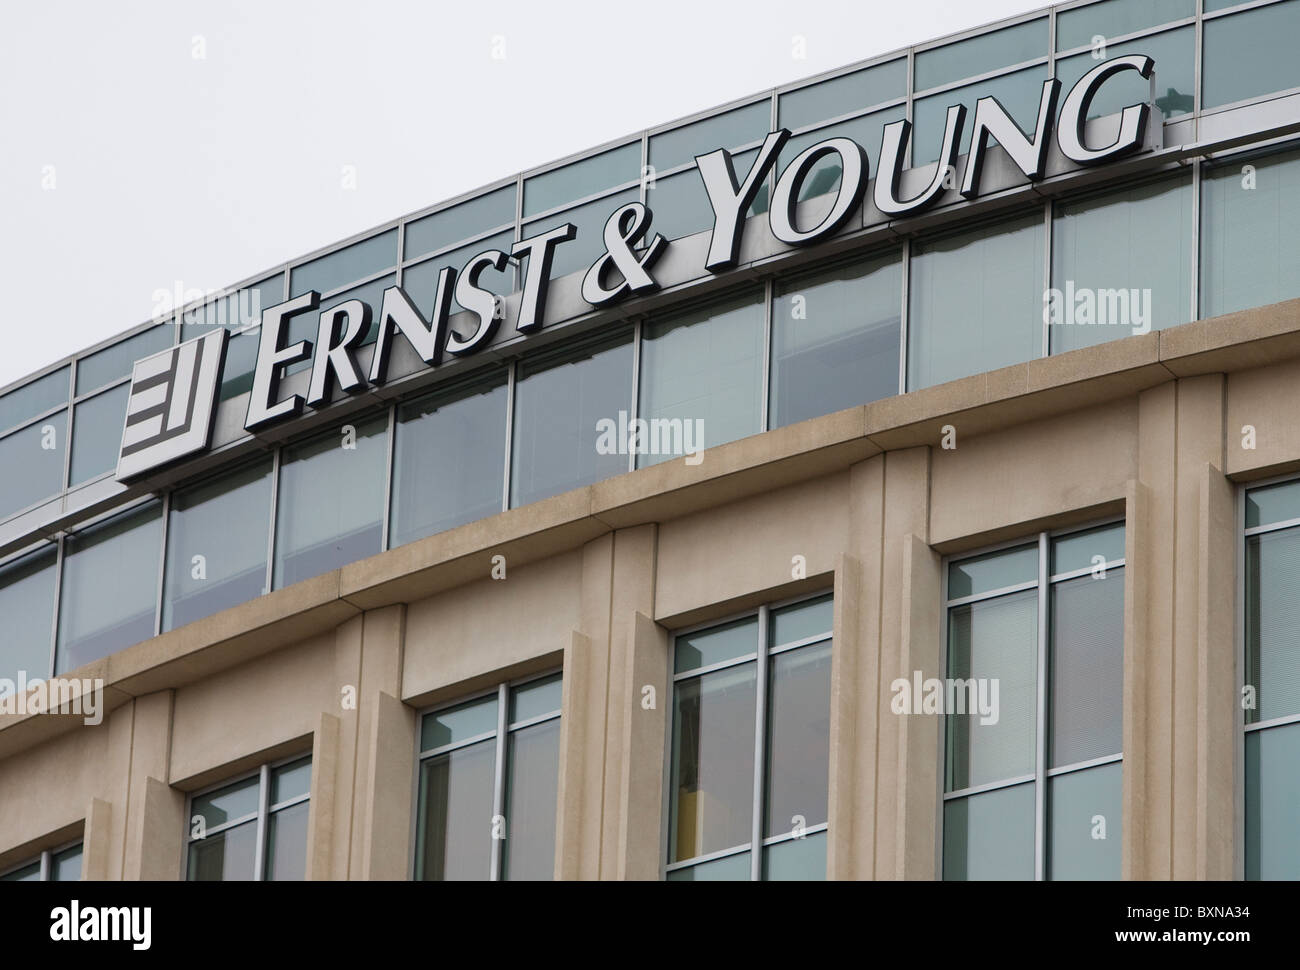 A Ernst & Young office building. - Stock Image